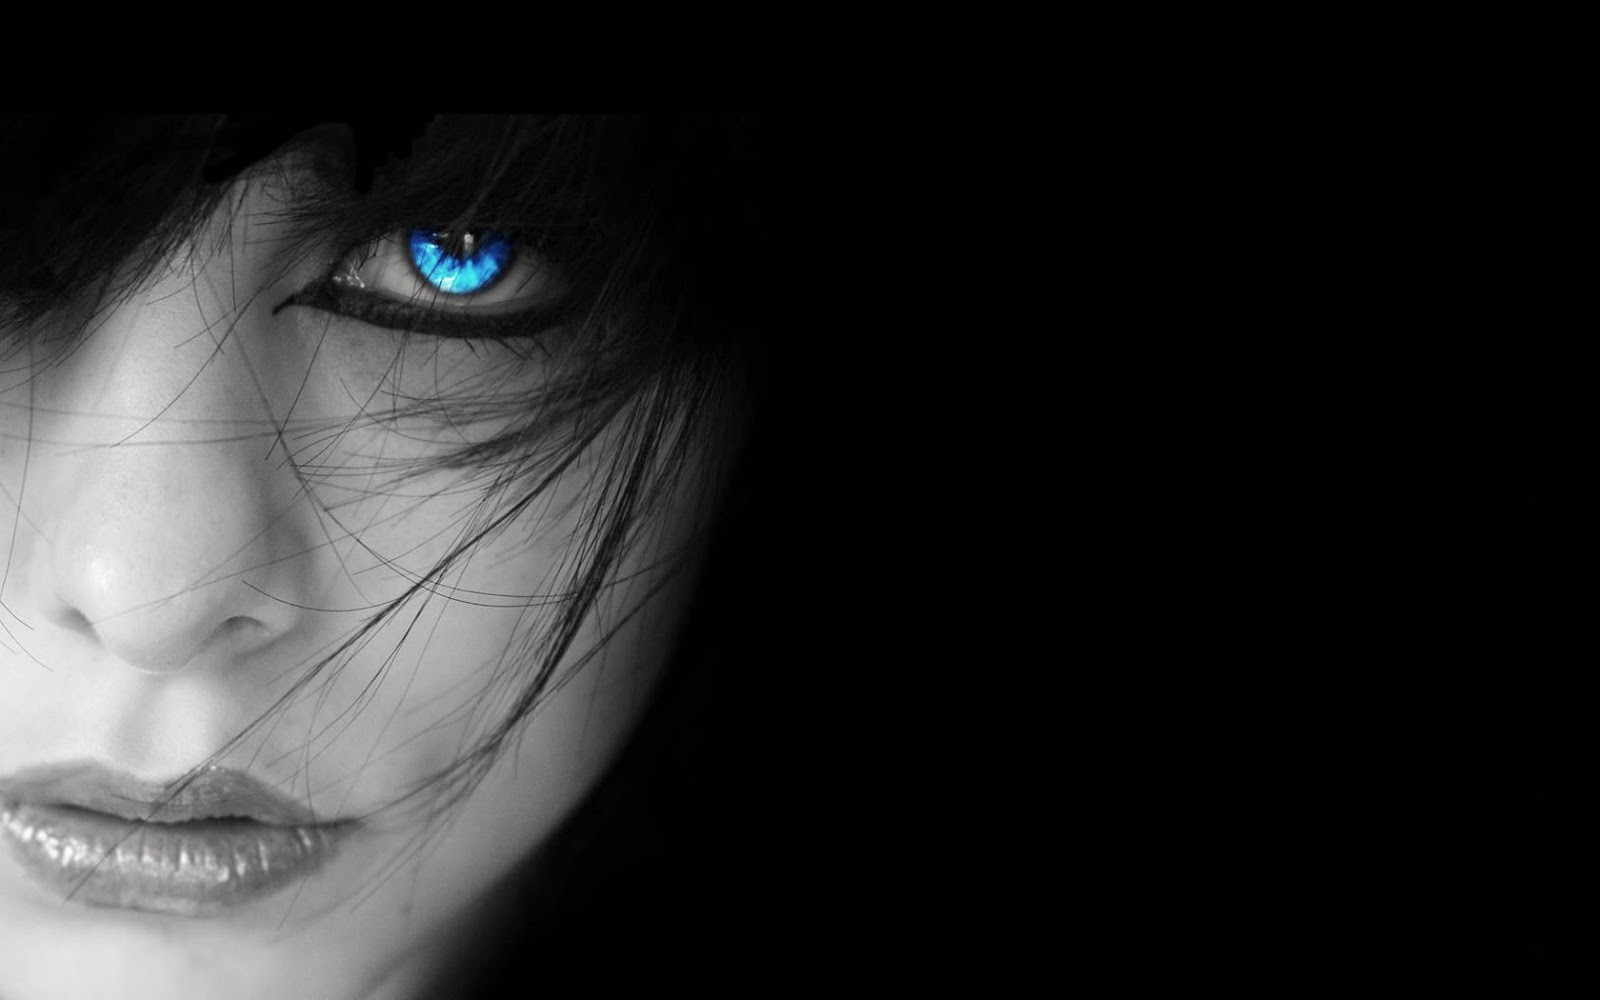 FREE HD WALLPAPER DOWNLOAD: Blue Eyes Wallpapers